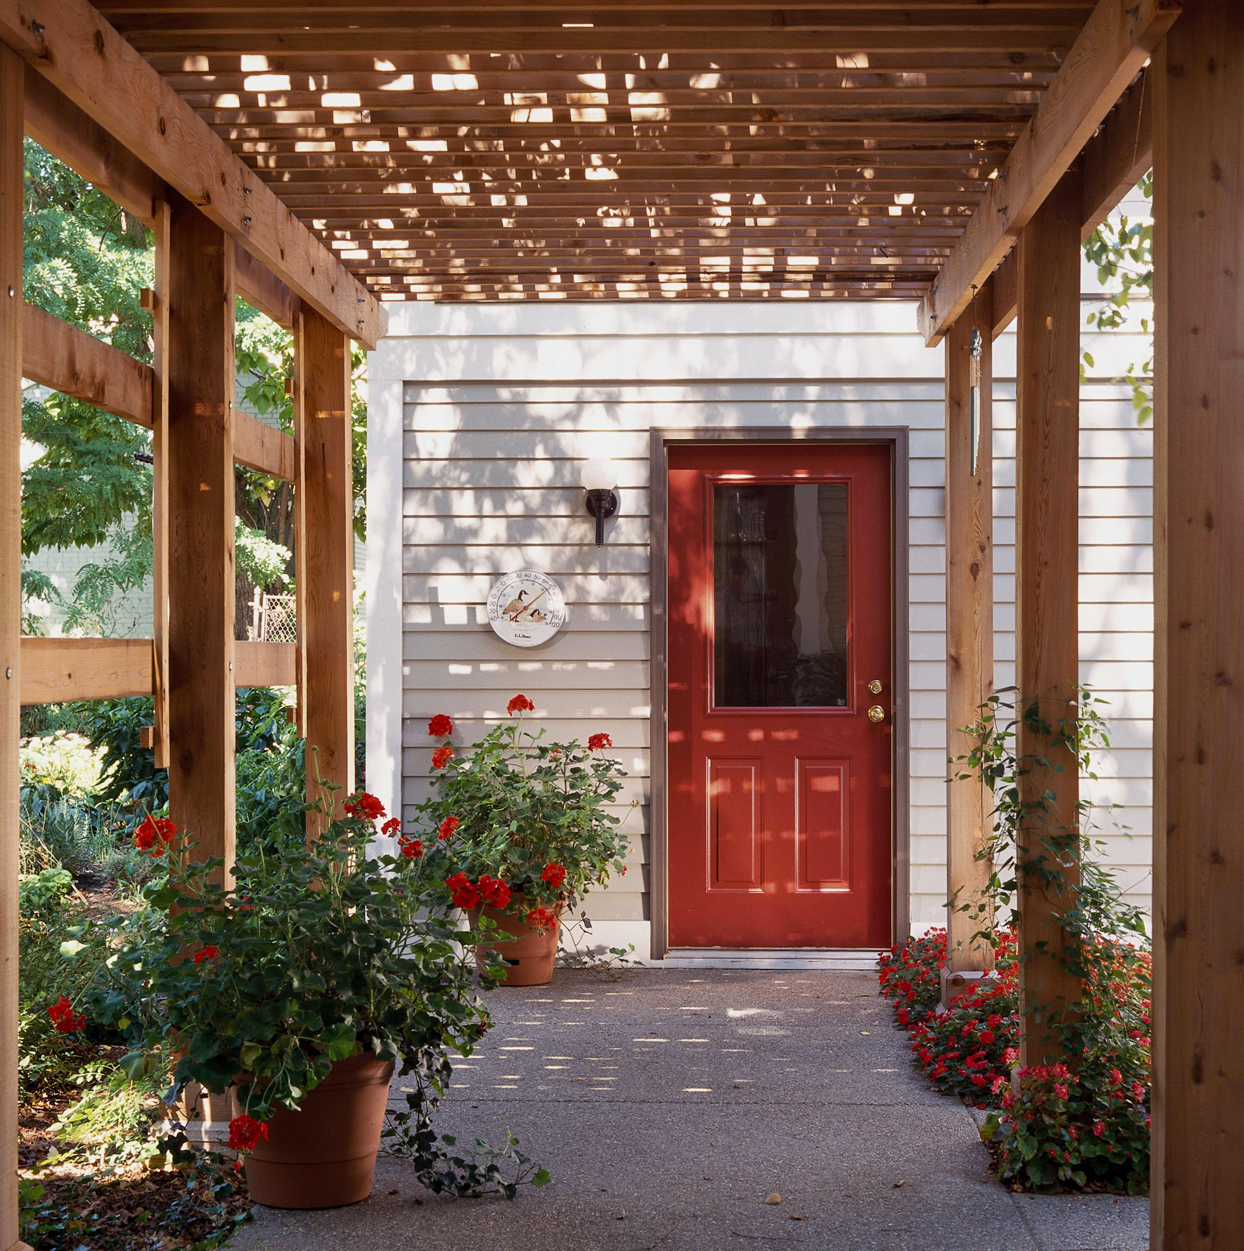 Wood Pergola Red Door with Red Flowers